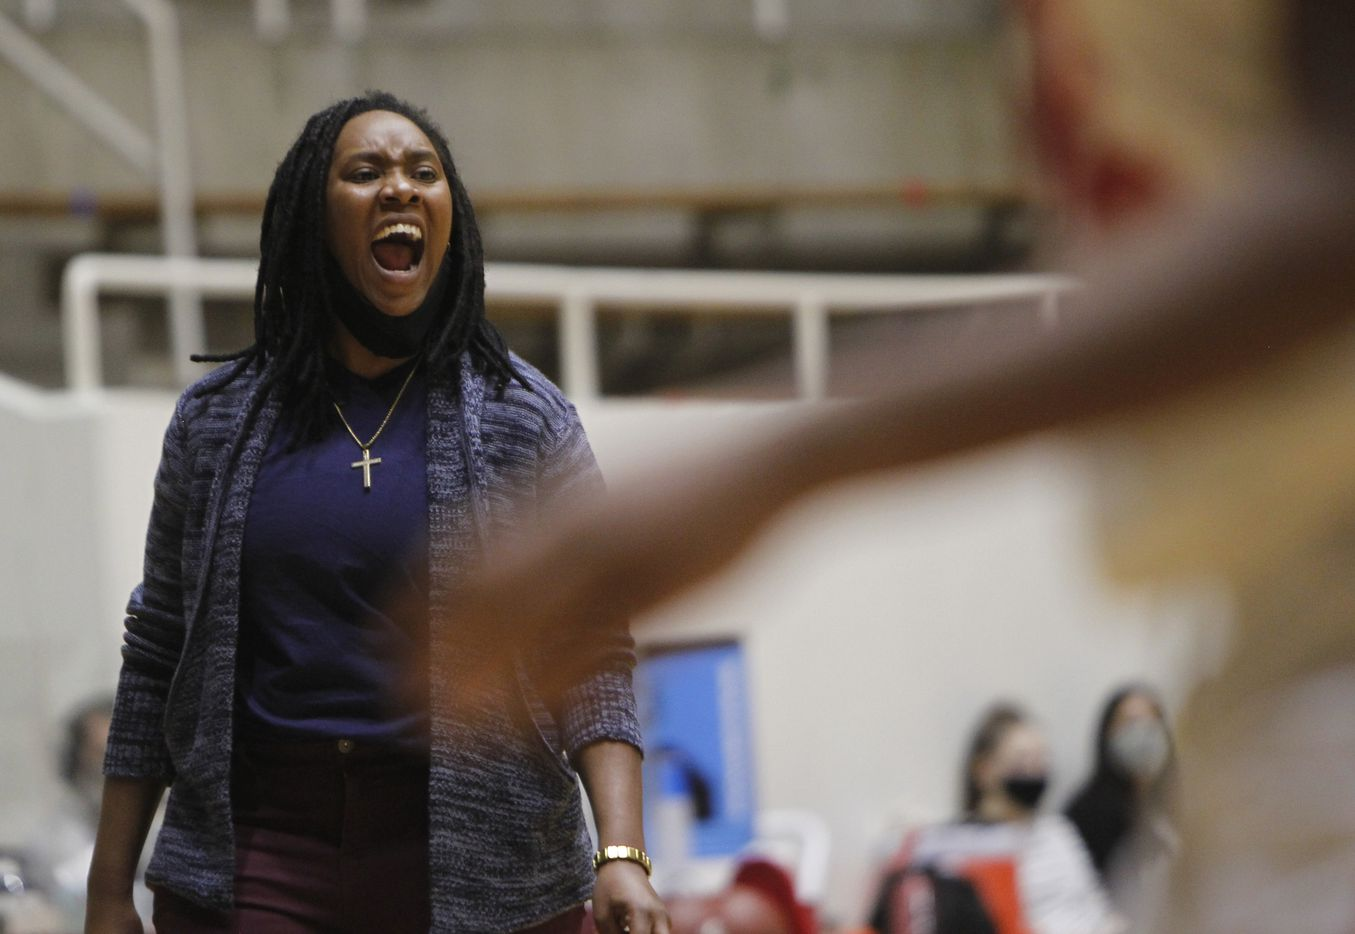 Duncanville head coach LaJeanna Howard shares some advice with her players during the first half of their game with Mesquite Horn. The two teams played their Class 6A area-round playoff basketball game at Loos Field House in Addison on February 23, 2021. (Steve Hamm/ Special Contributor)